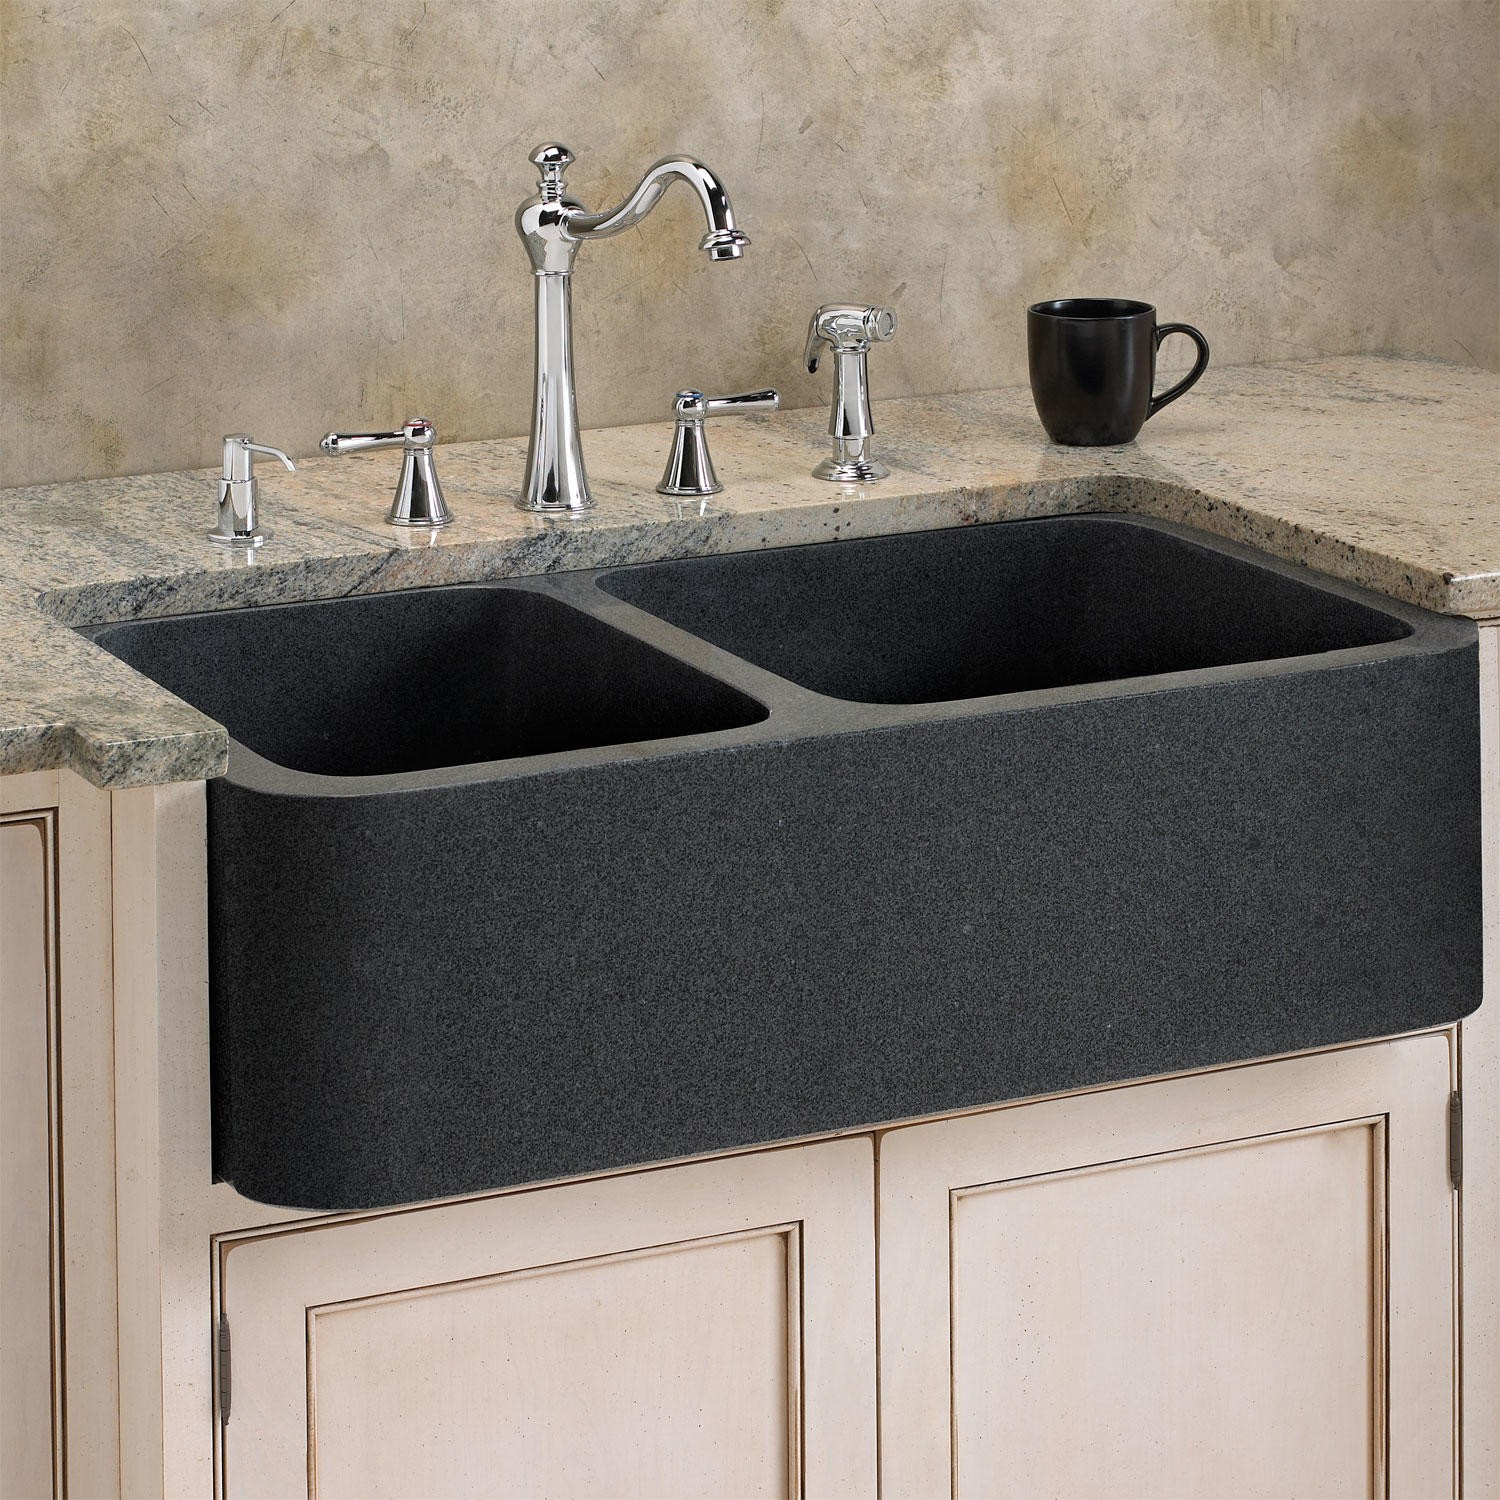 black-sink-made-of-granite